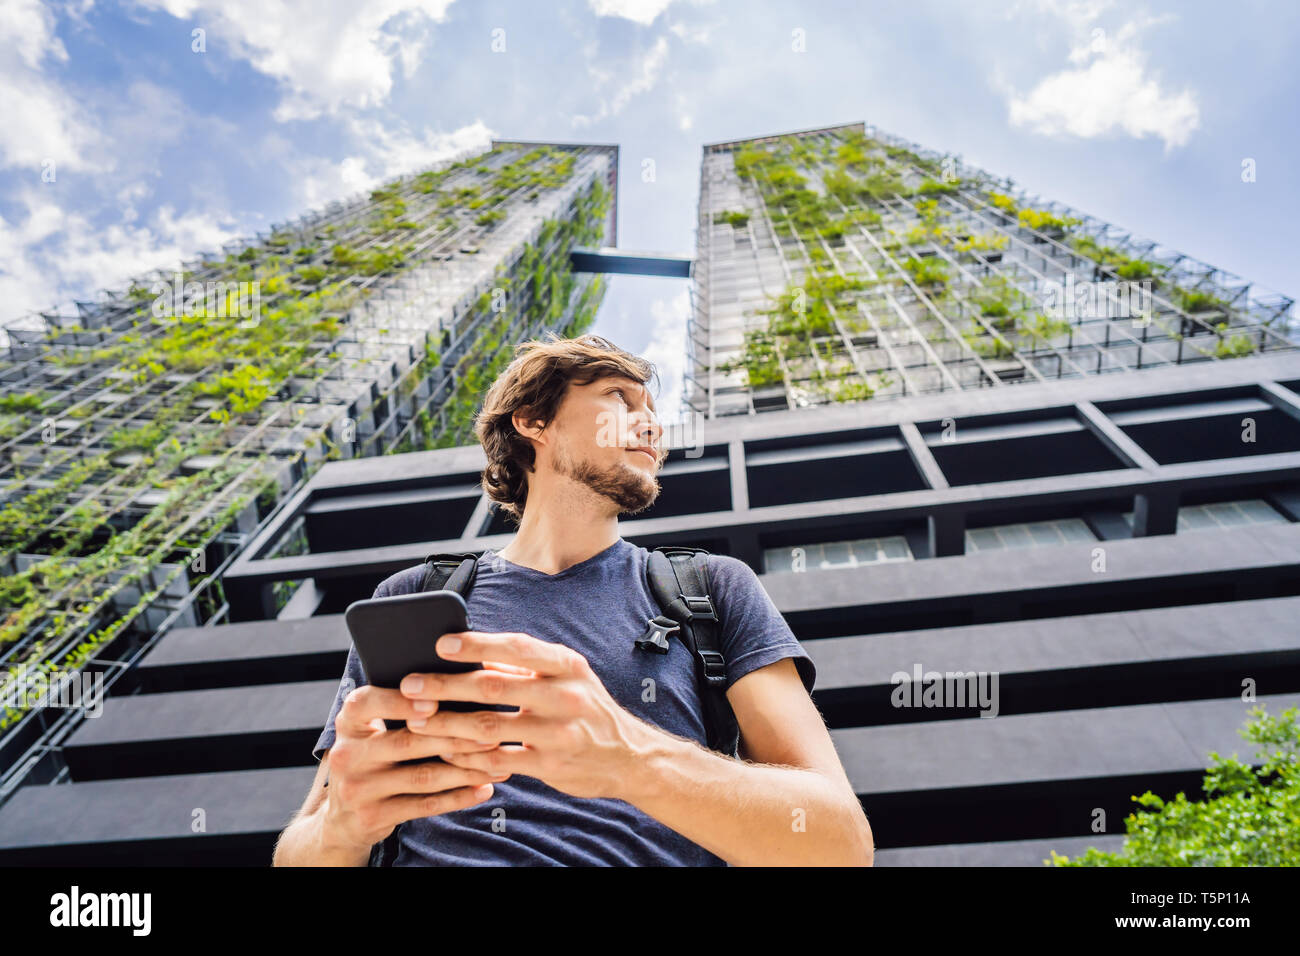 man using map app on smartphone on the background of skyscrapers - Stock Image